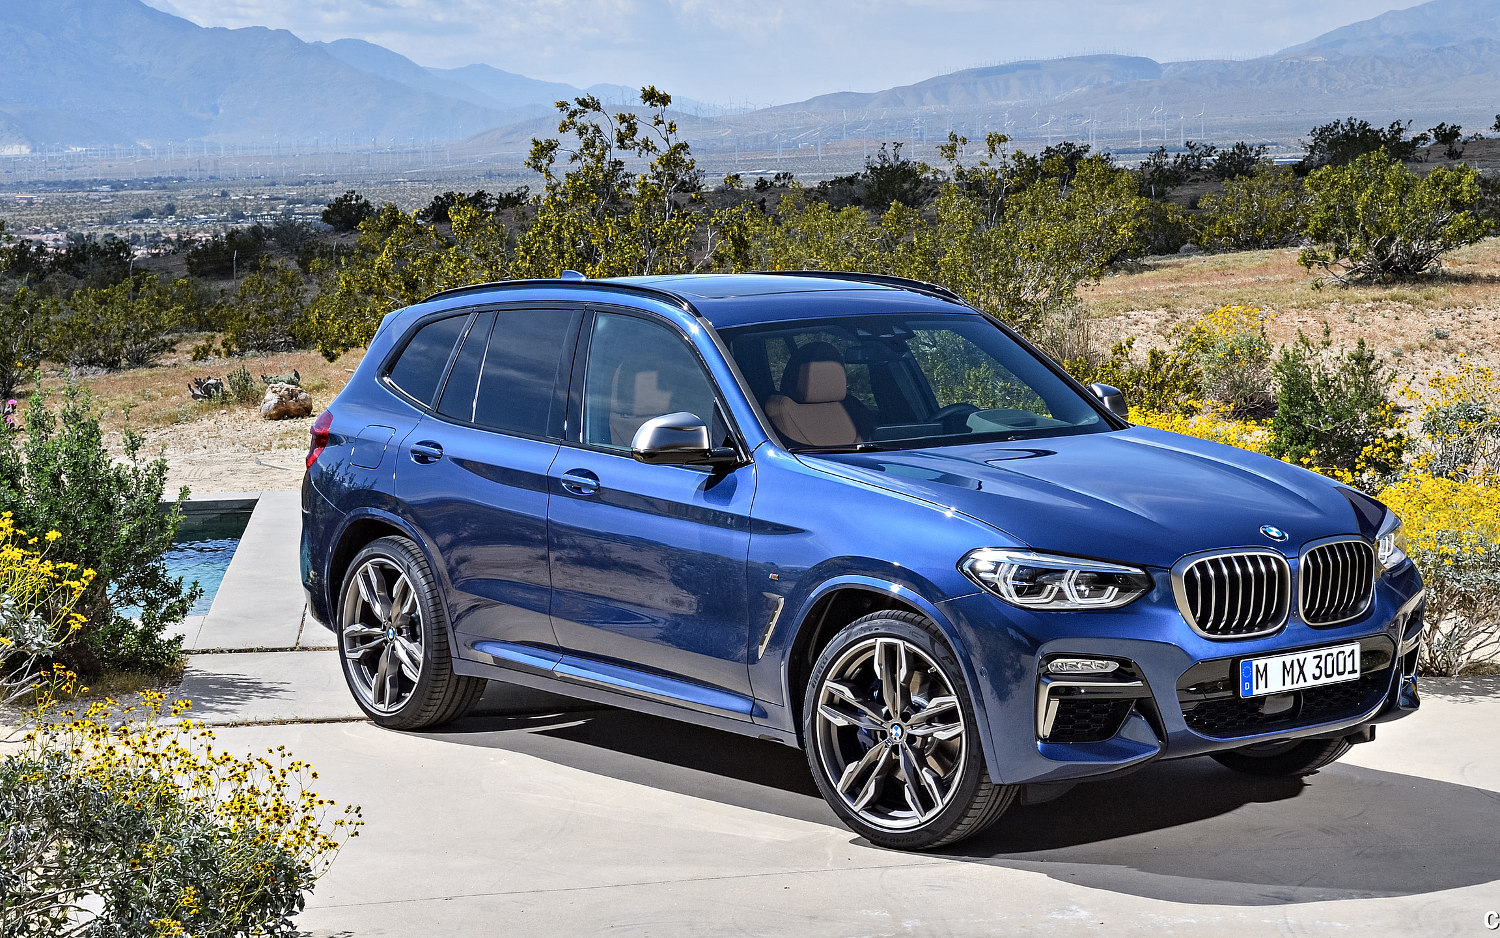 Comparison Bmw X3 M40i 2018 Vs Land Rover Range